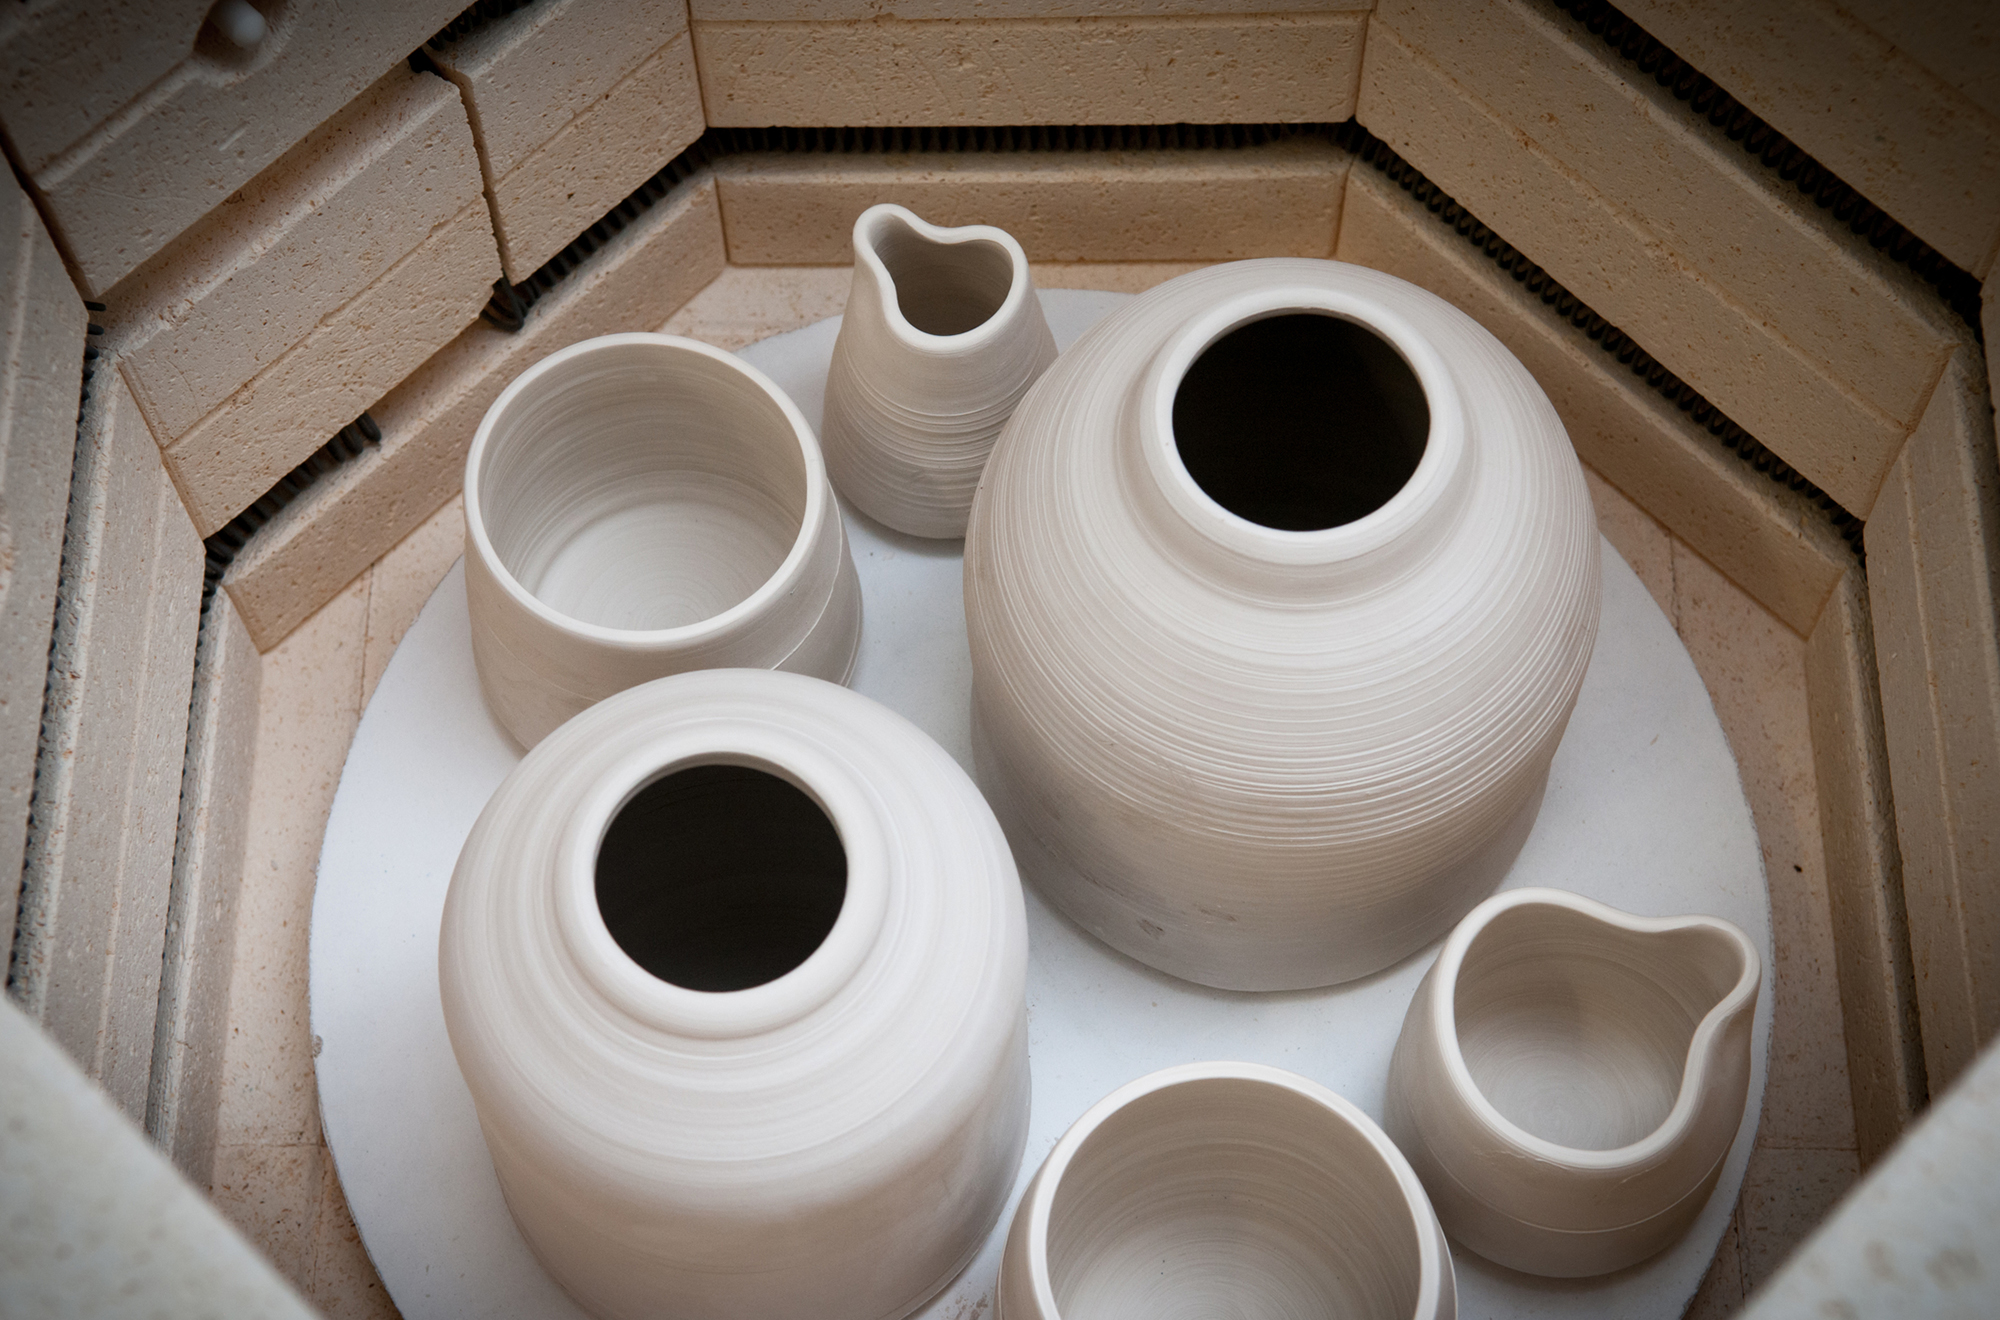 Clay pots in kiln